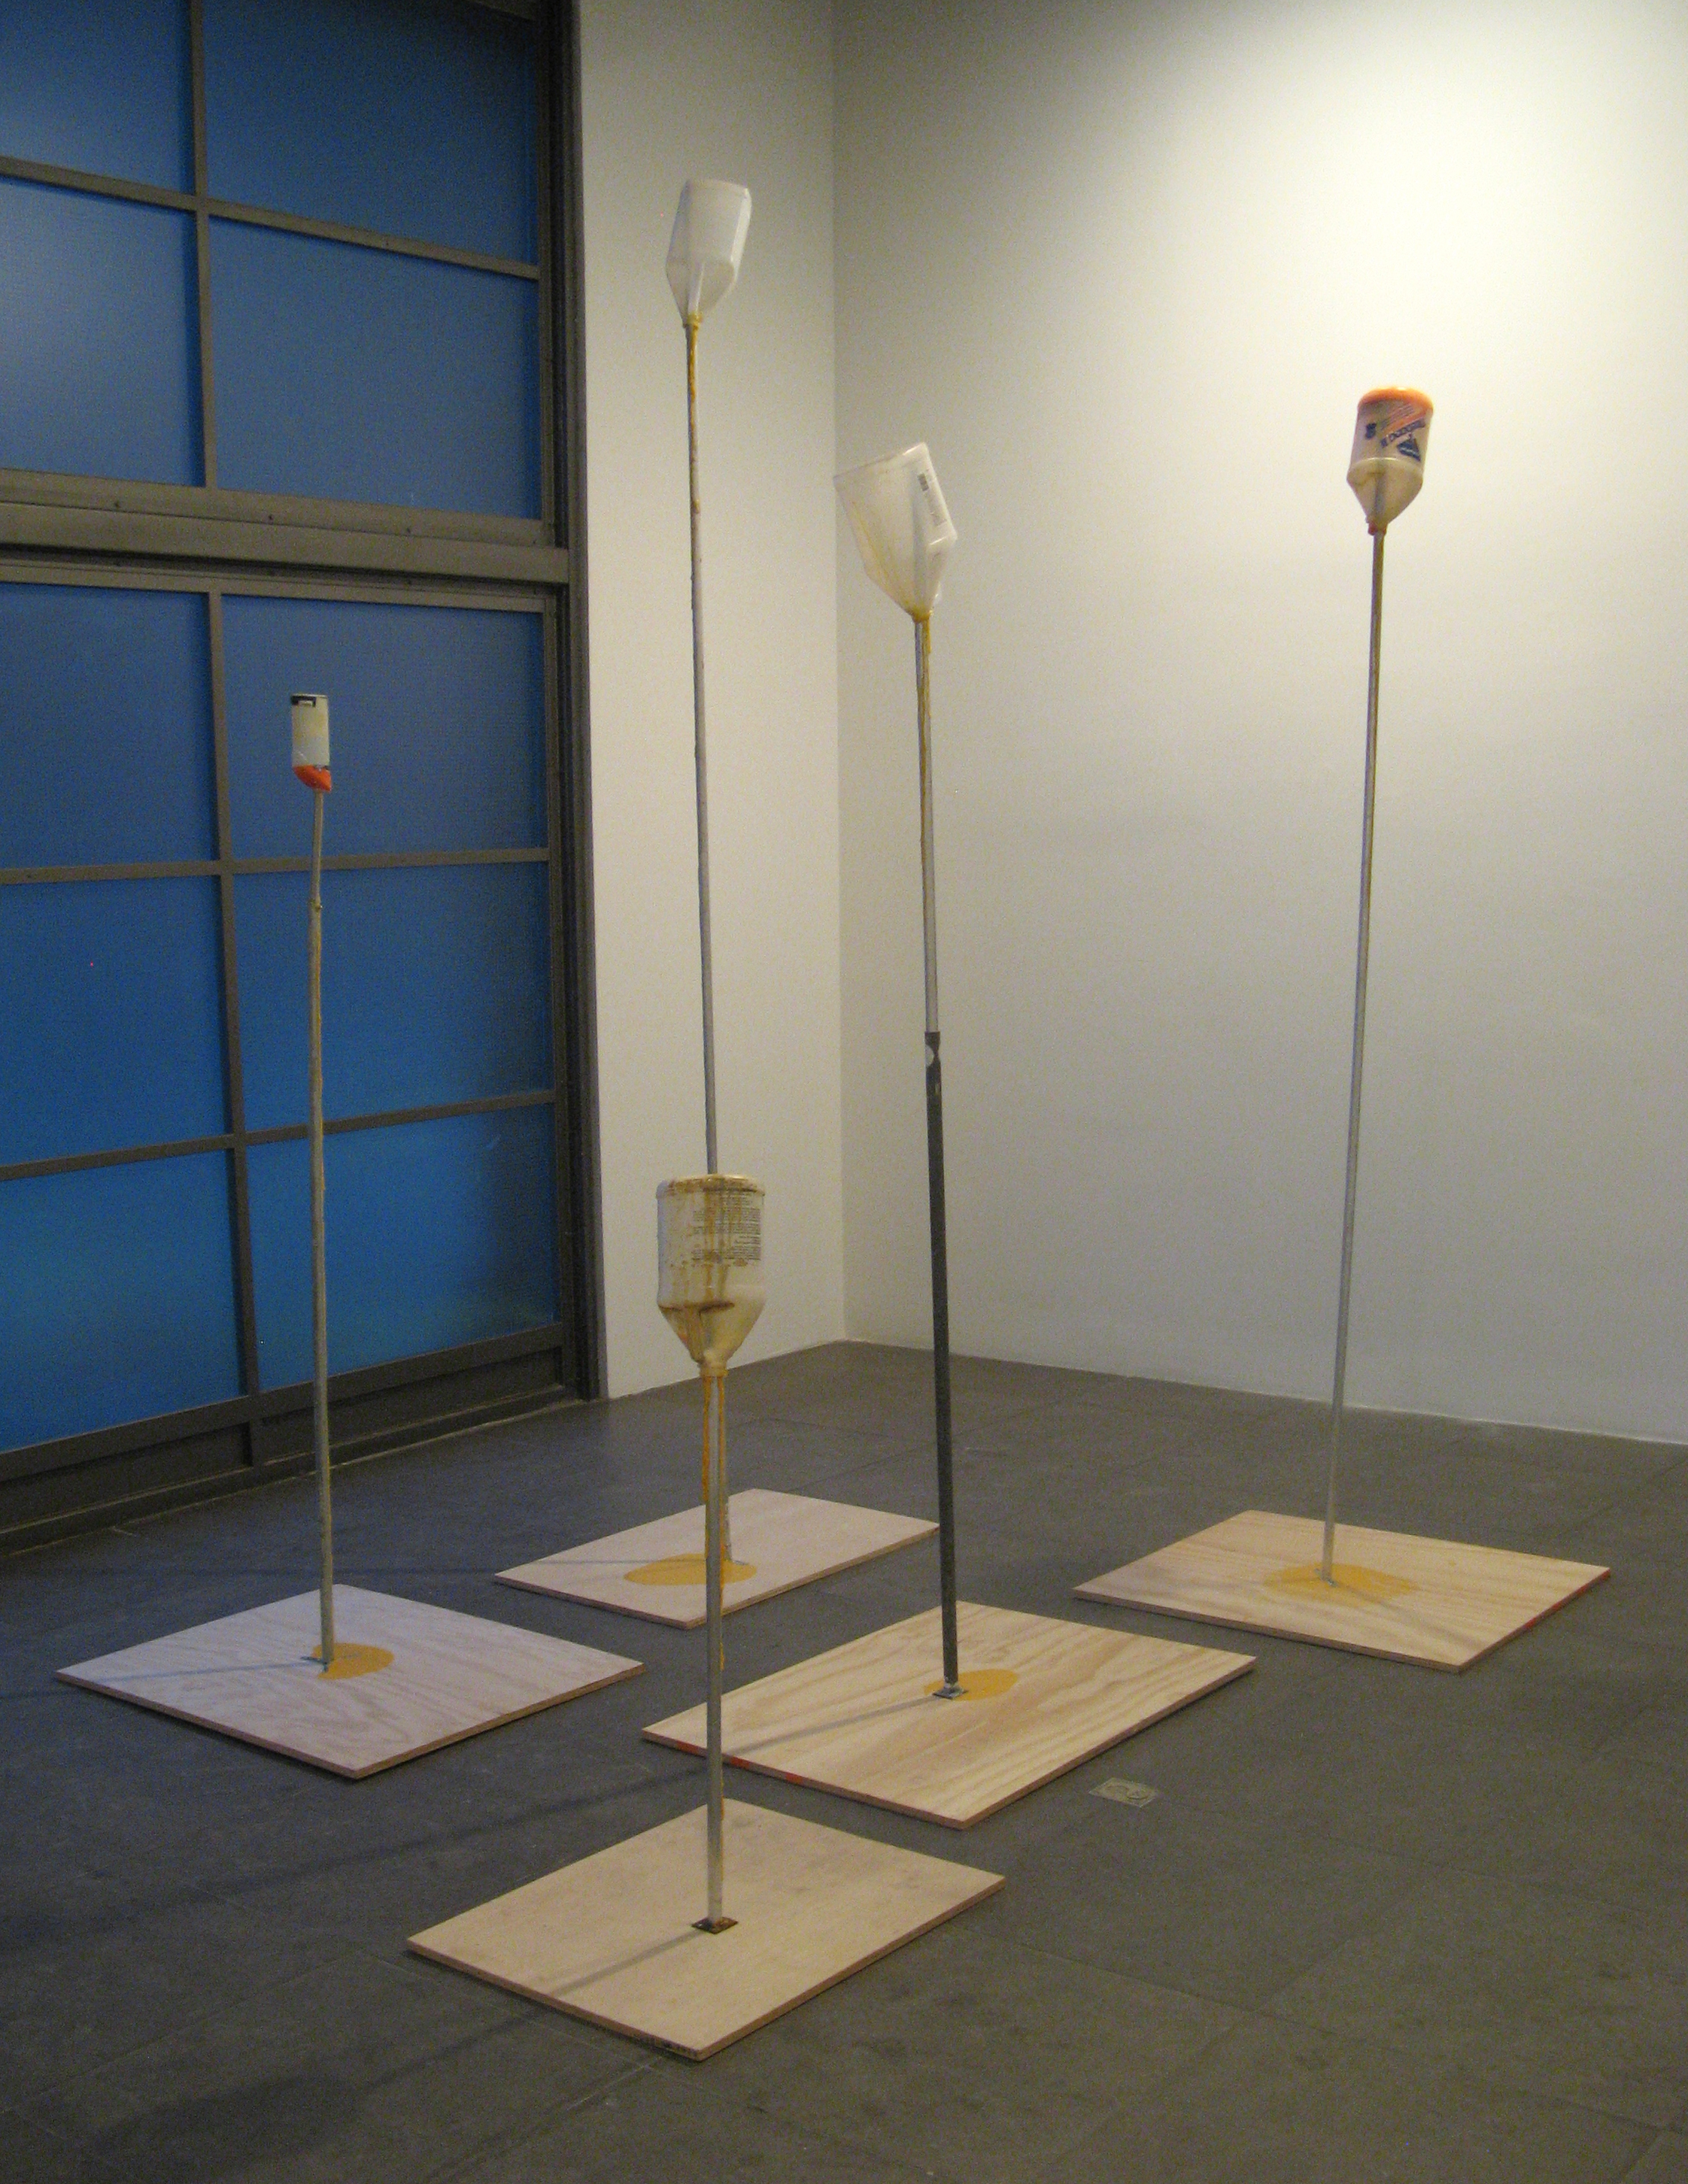 Bondmer stetlie installation view